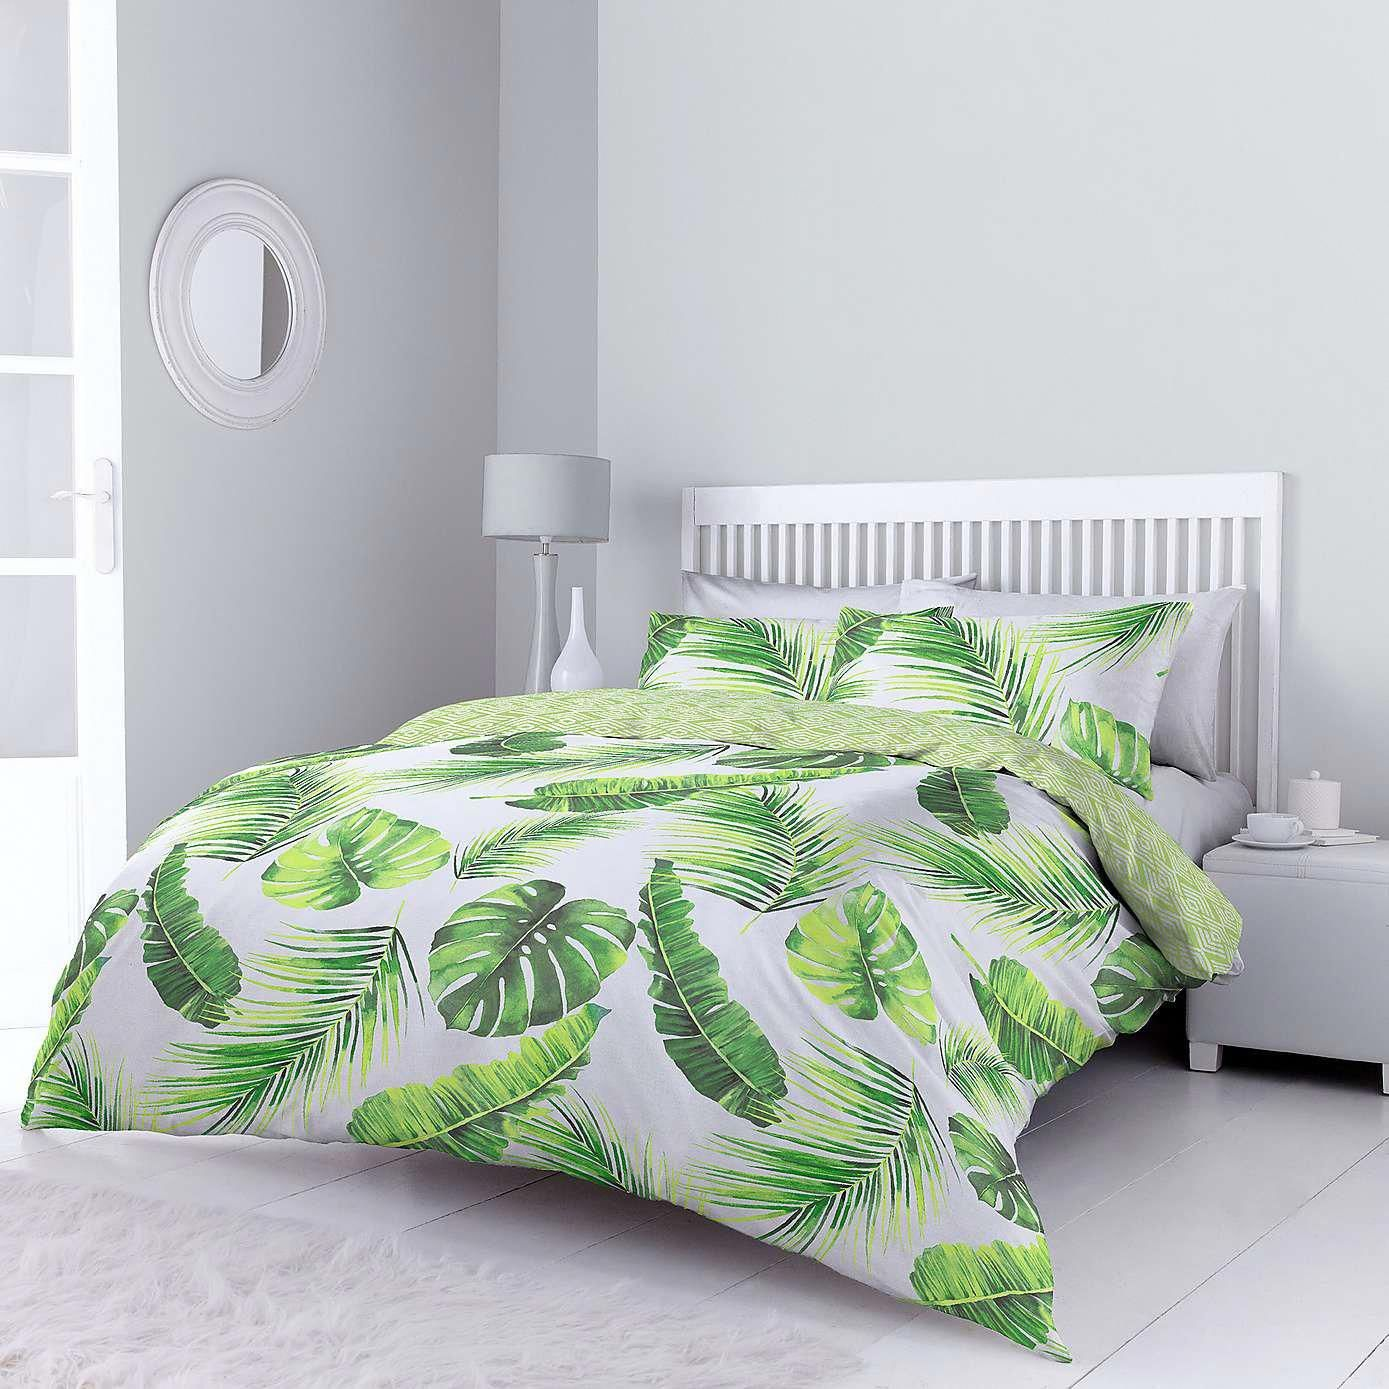 Second Hand Bed Sheets For Sale Beddinginnfreeshipping Product Id 1334641321 Limitlesssaves Green Bedding Bed Linens Luxury Luxury Bedding Master Bedroom